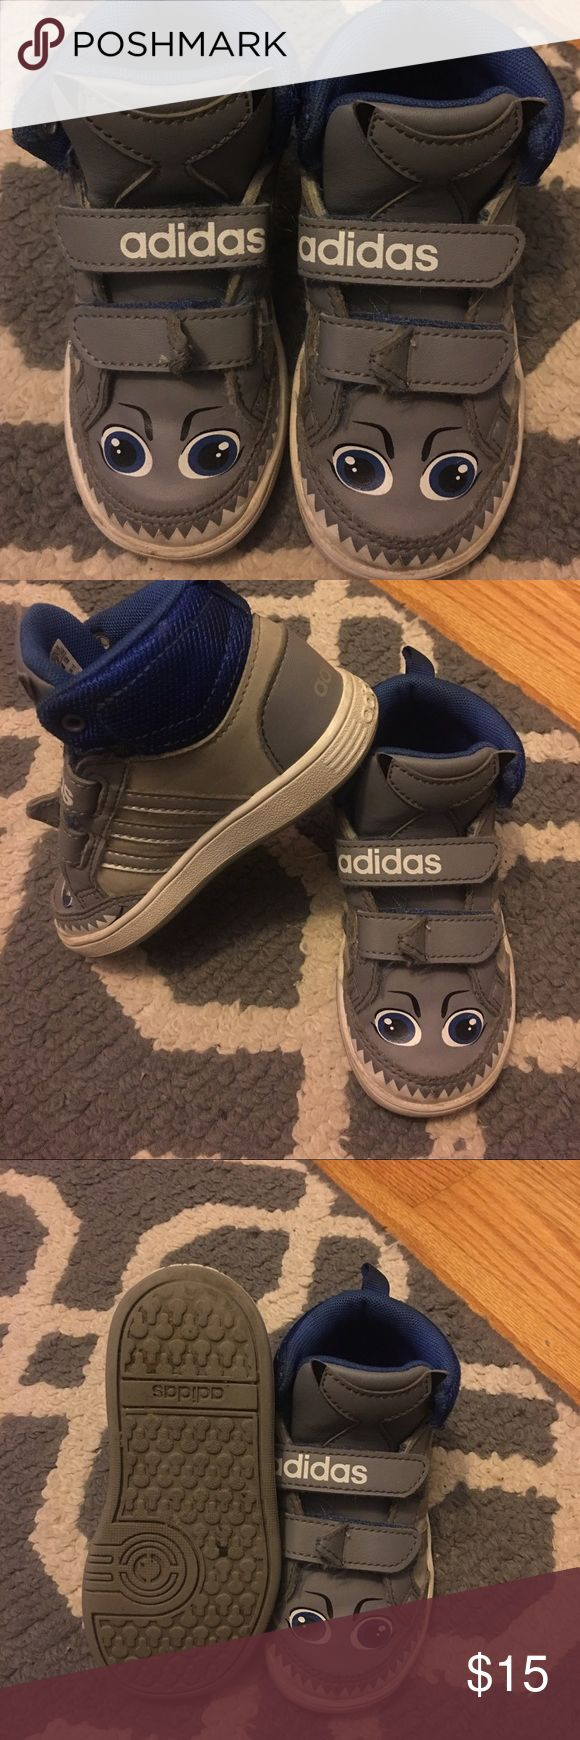 Adidas Neo High Top Shark Sneakers 7c Adidas High Top Neo Shark Sneakers/size 7c/some signs of wear but it overall good condition for boys' used Sneakers 👟 Adidas Shoes Sneakers